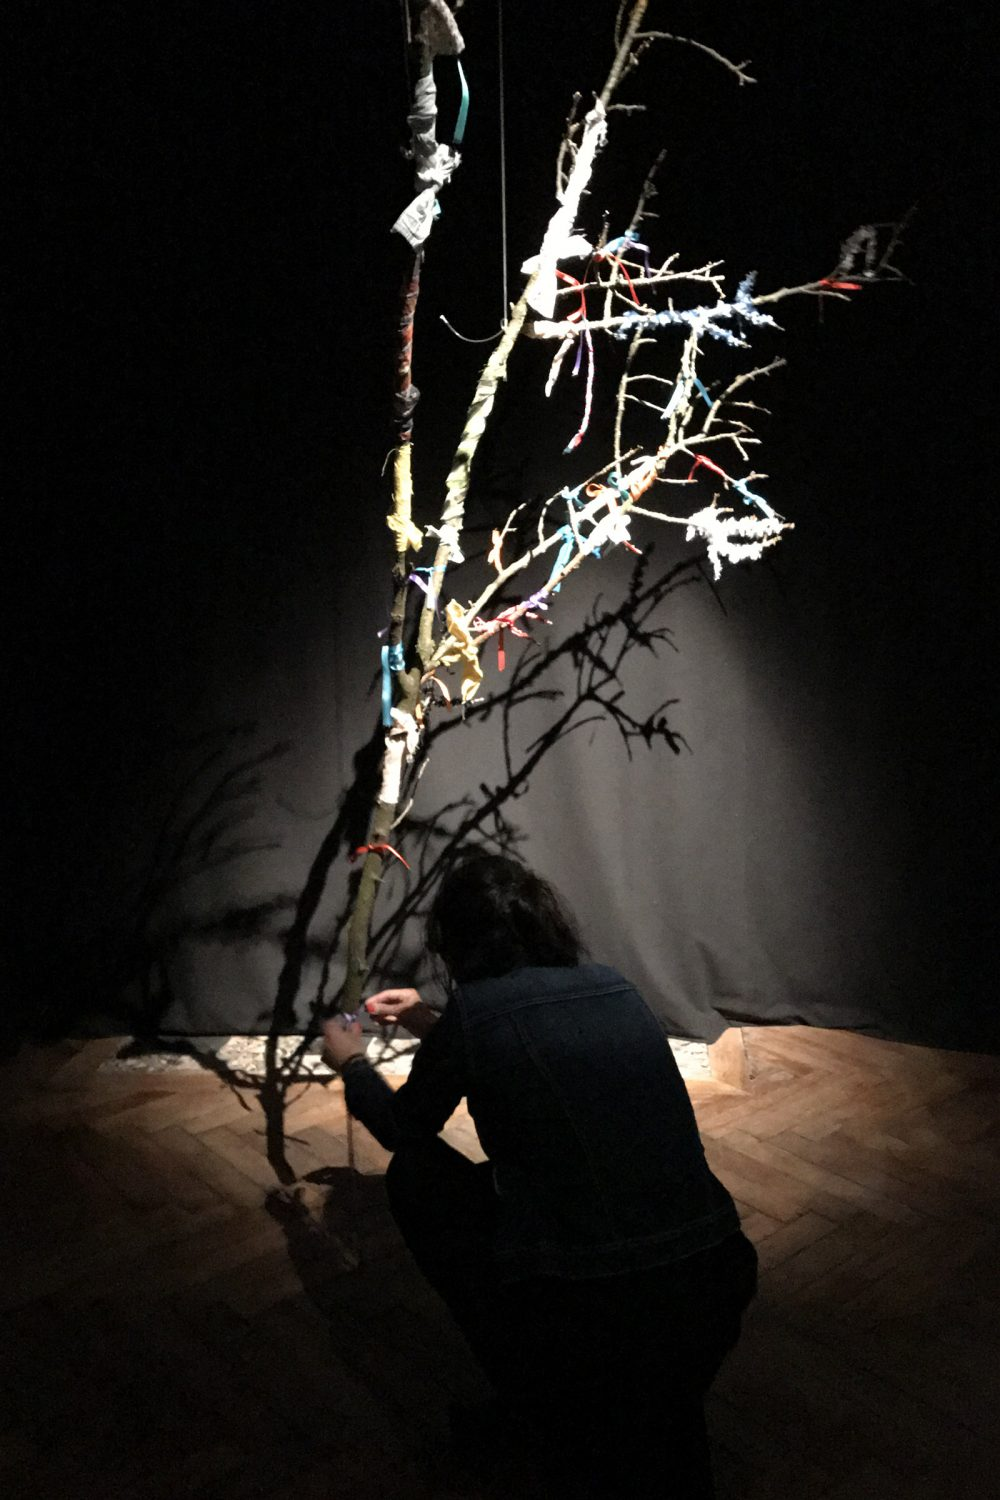 Wish Tree 2017, gözde mimiko türkkan, Centre Intermondes, La Rochelle, France